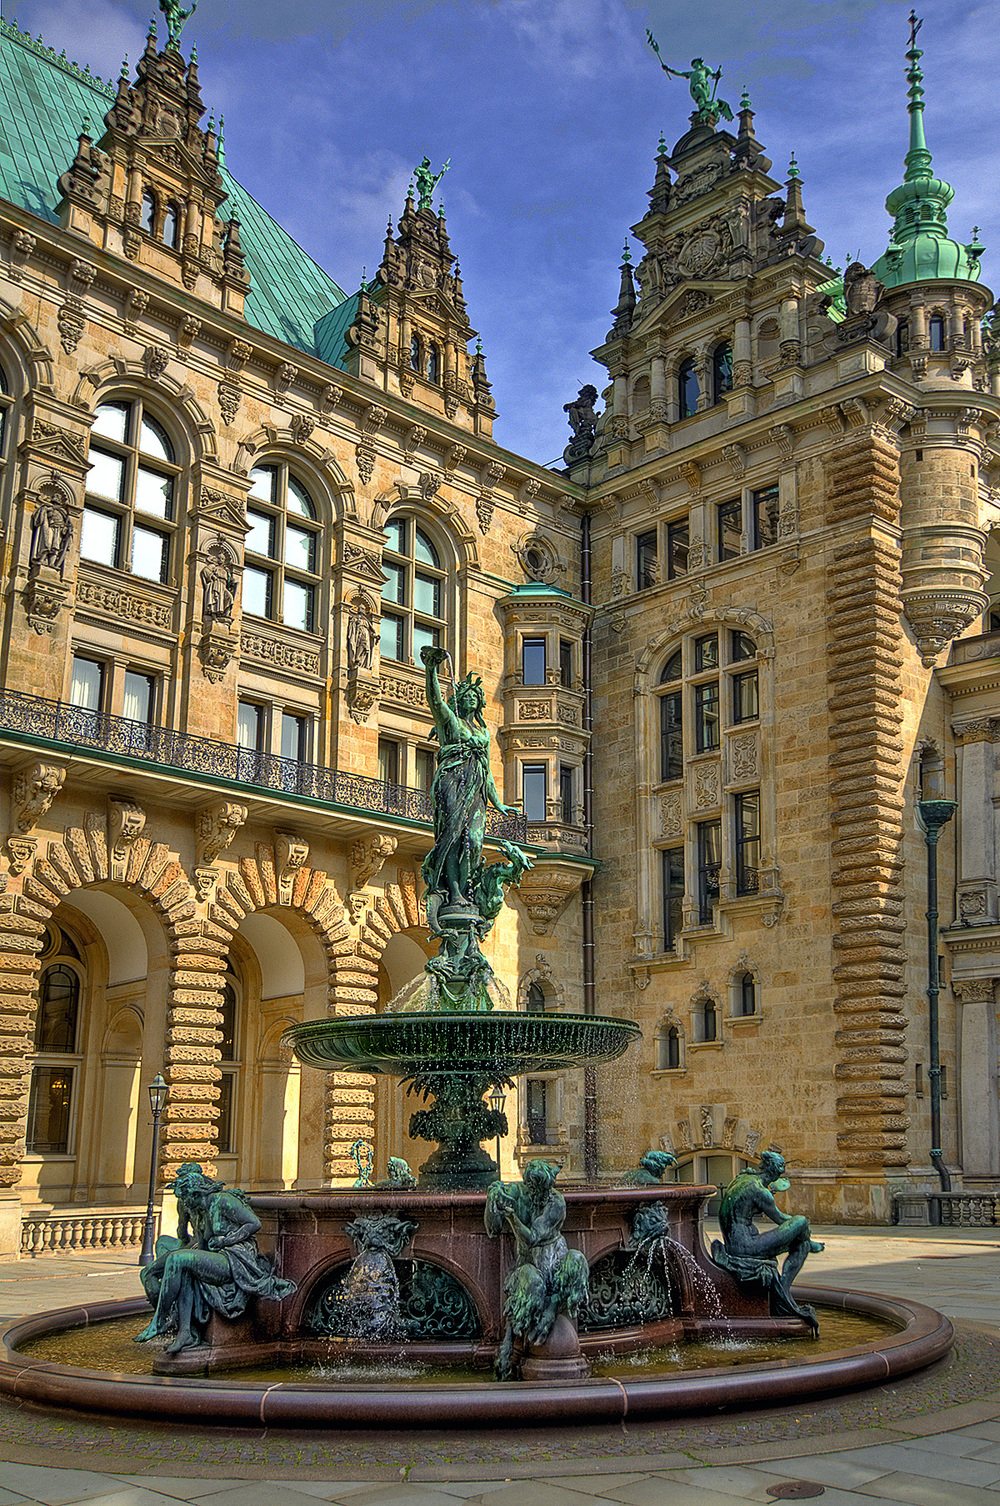 City Hall inner courtyard with the Fountain of Hygieia, classical goddess of health (photo by Ulrich Kerstling)